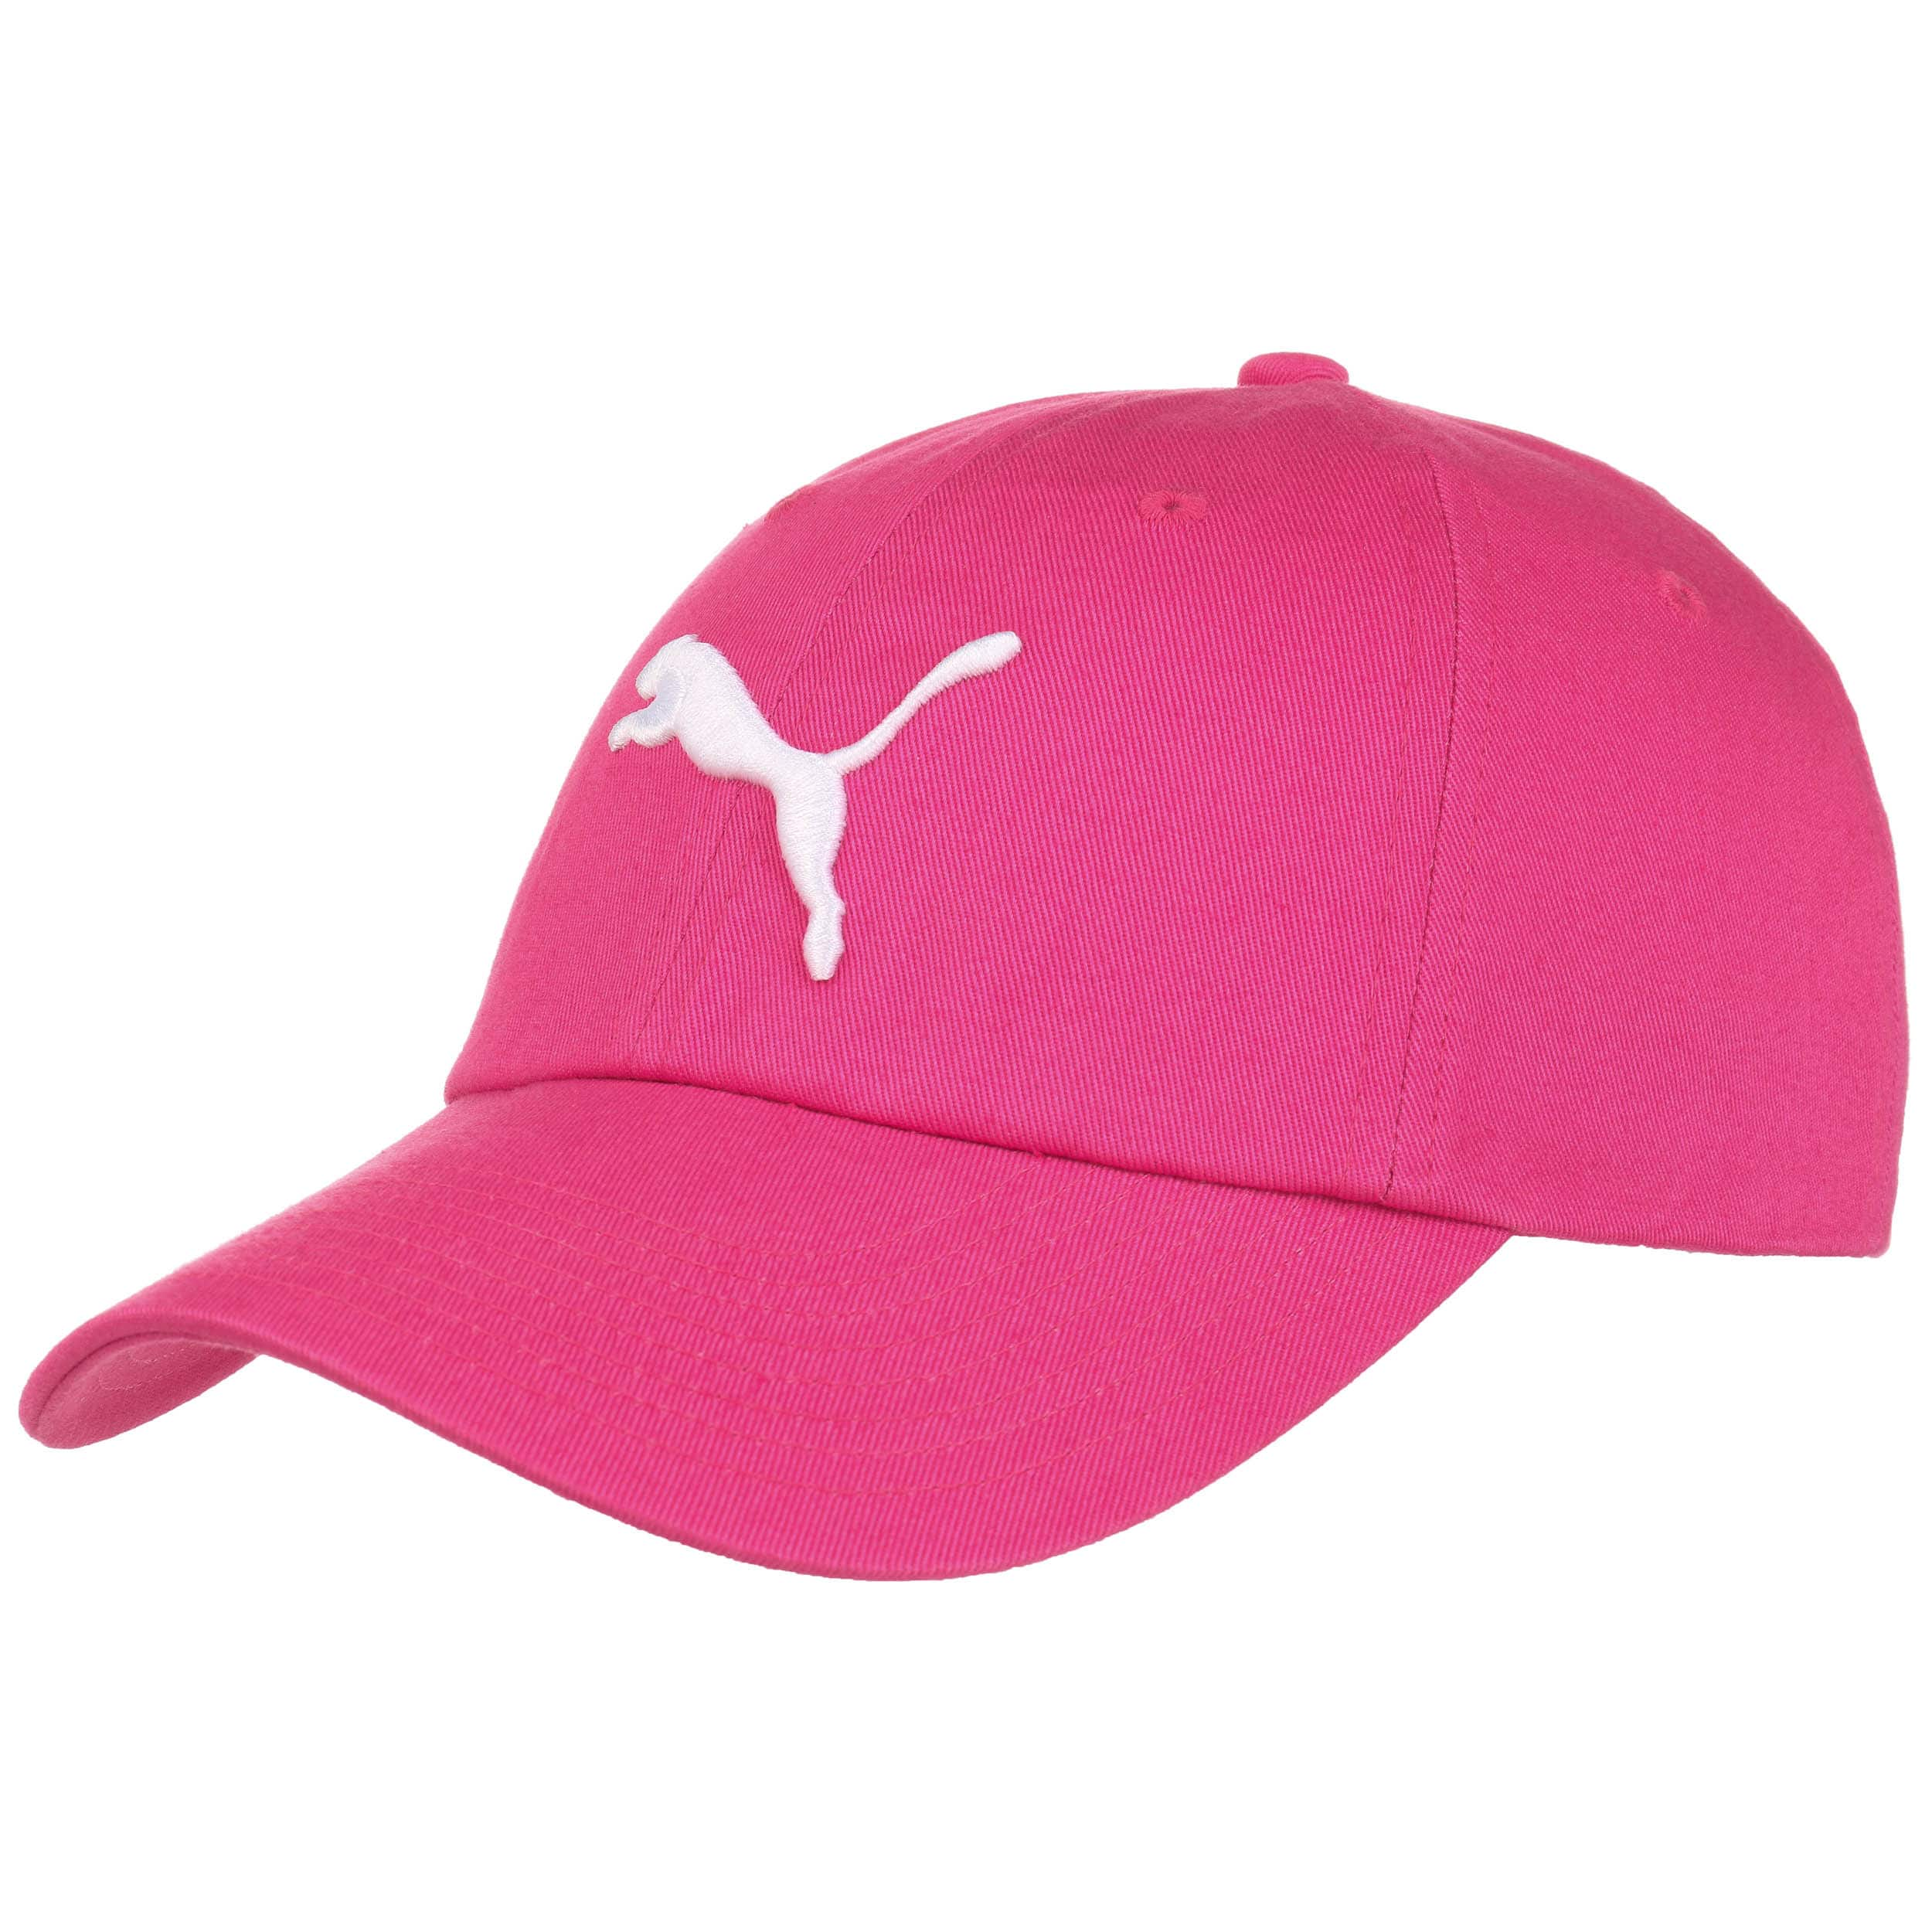 a0b2f001109 ... greece ess big cat cap by puma 5 928fe 9b5d6 ...